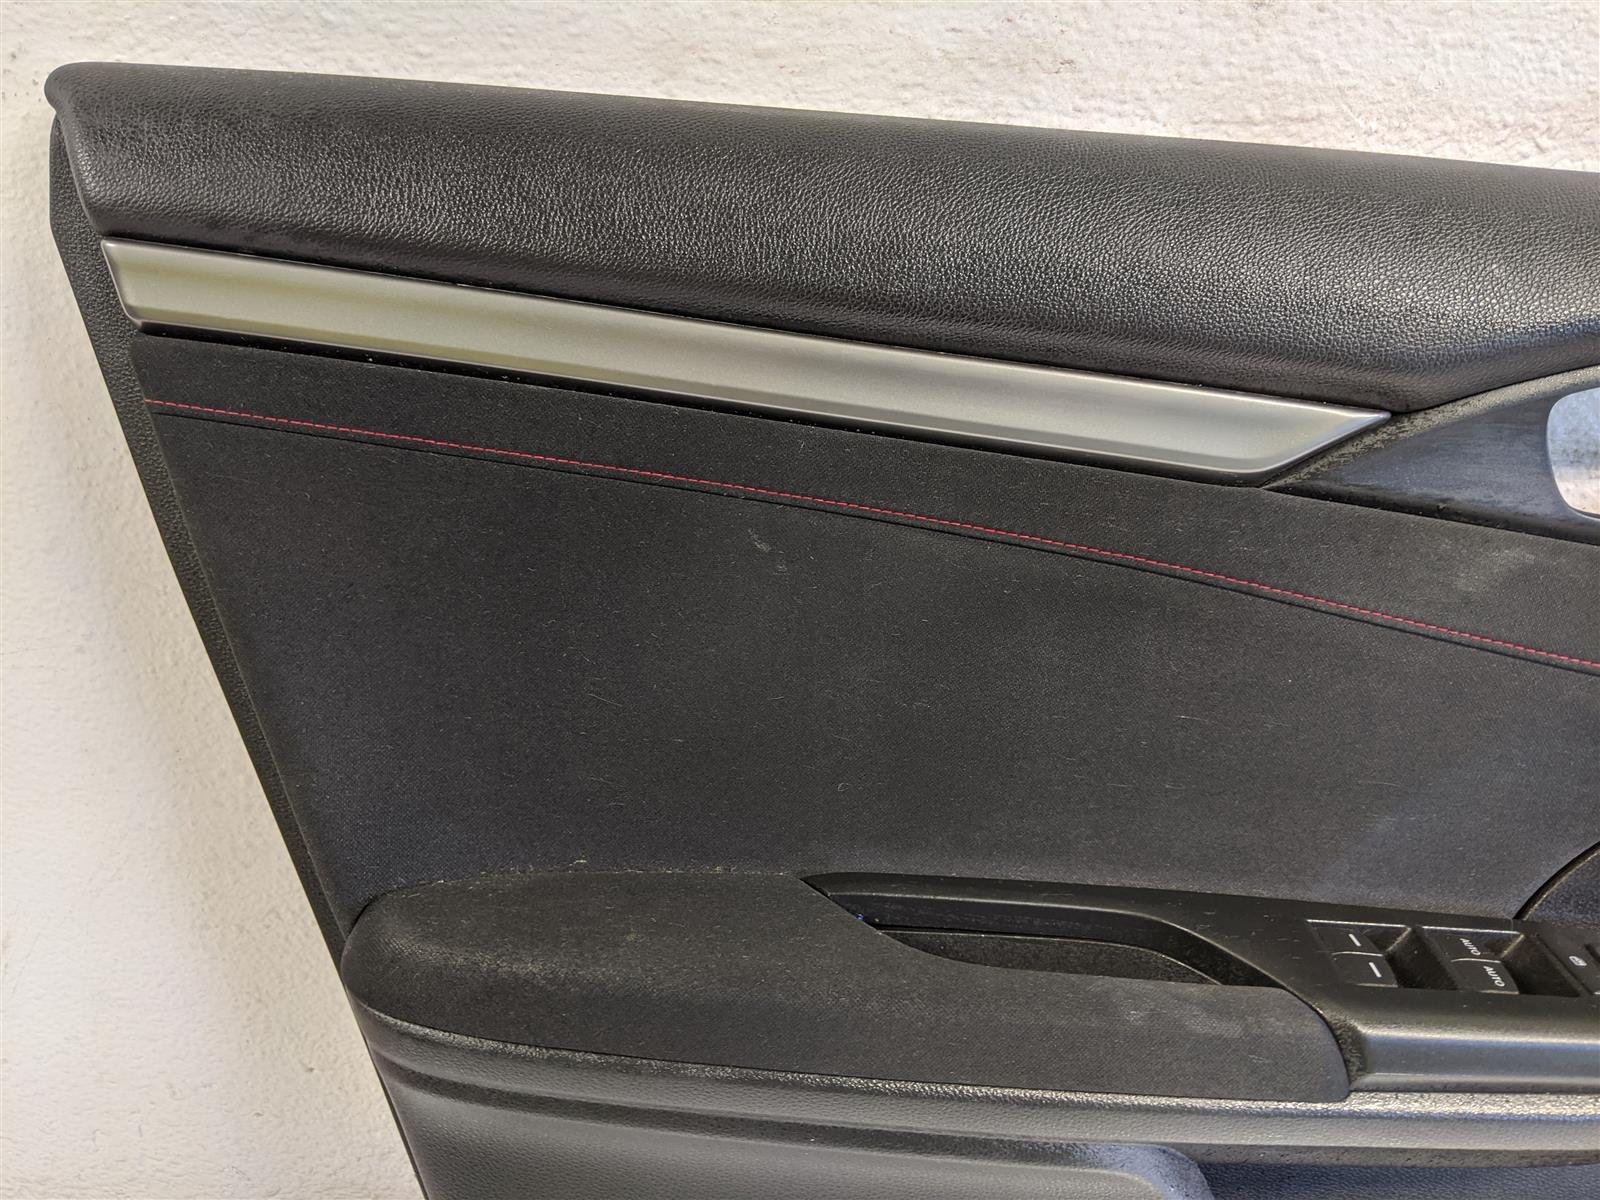 2018 Honda Civic Si Front Driver Door Panel Trim Replacement